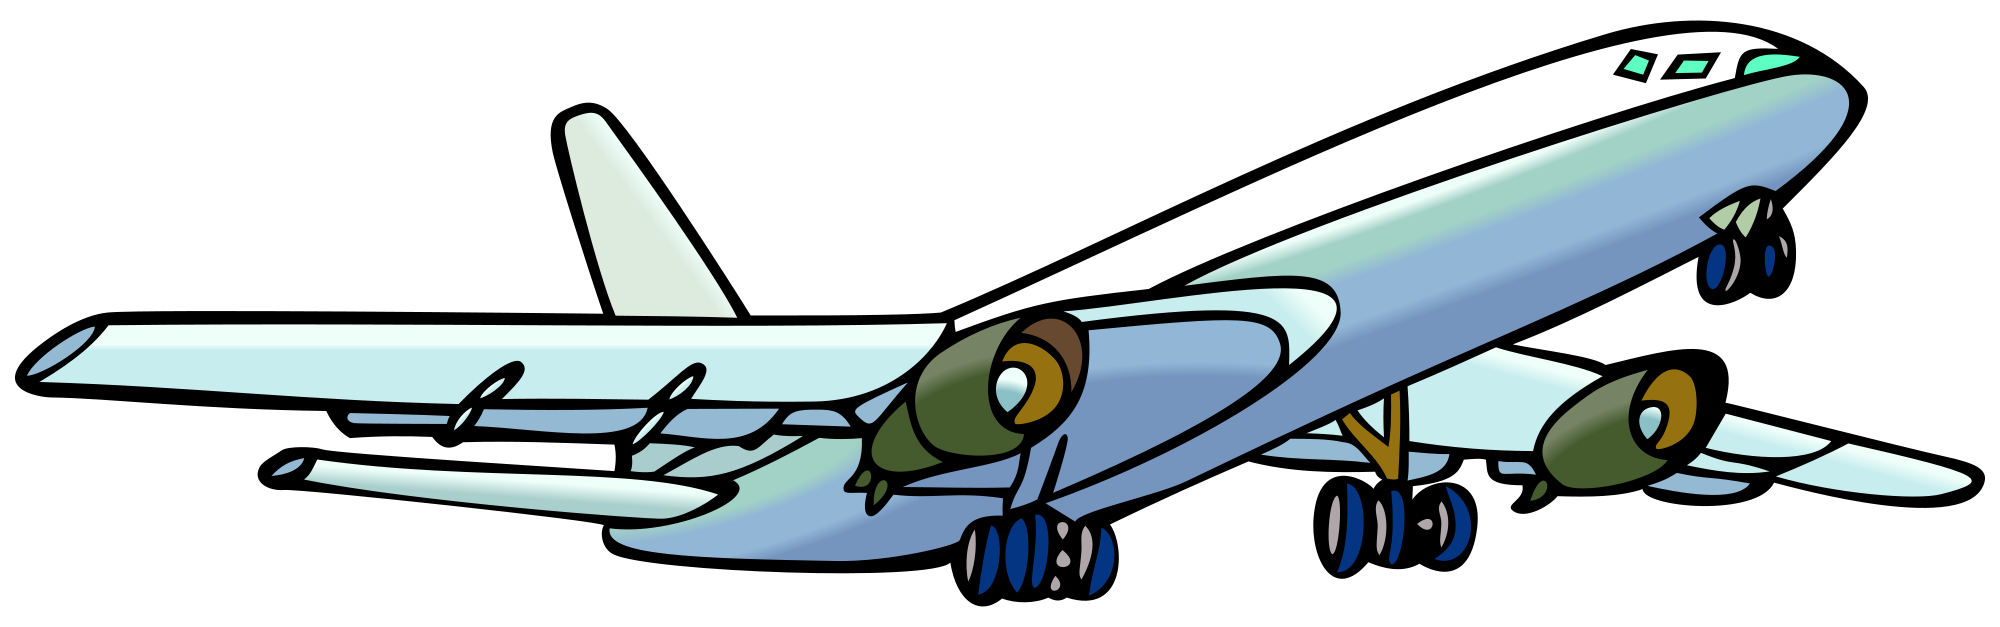 picture royalty free library File airplane svg wikimedia. Commons clipart.